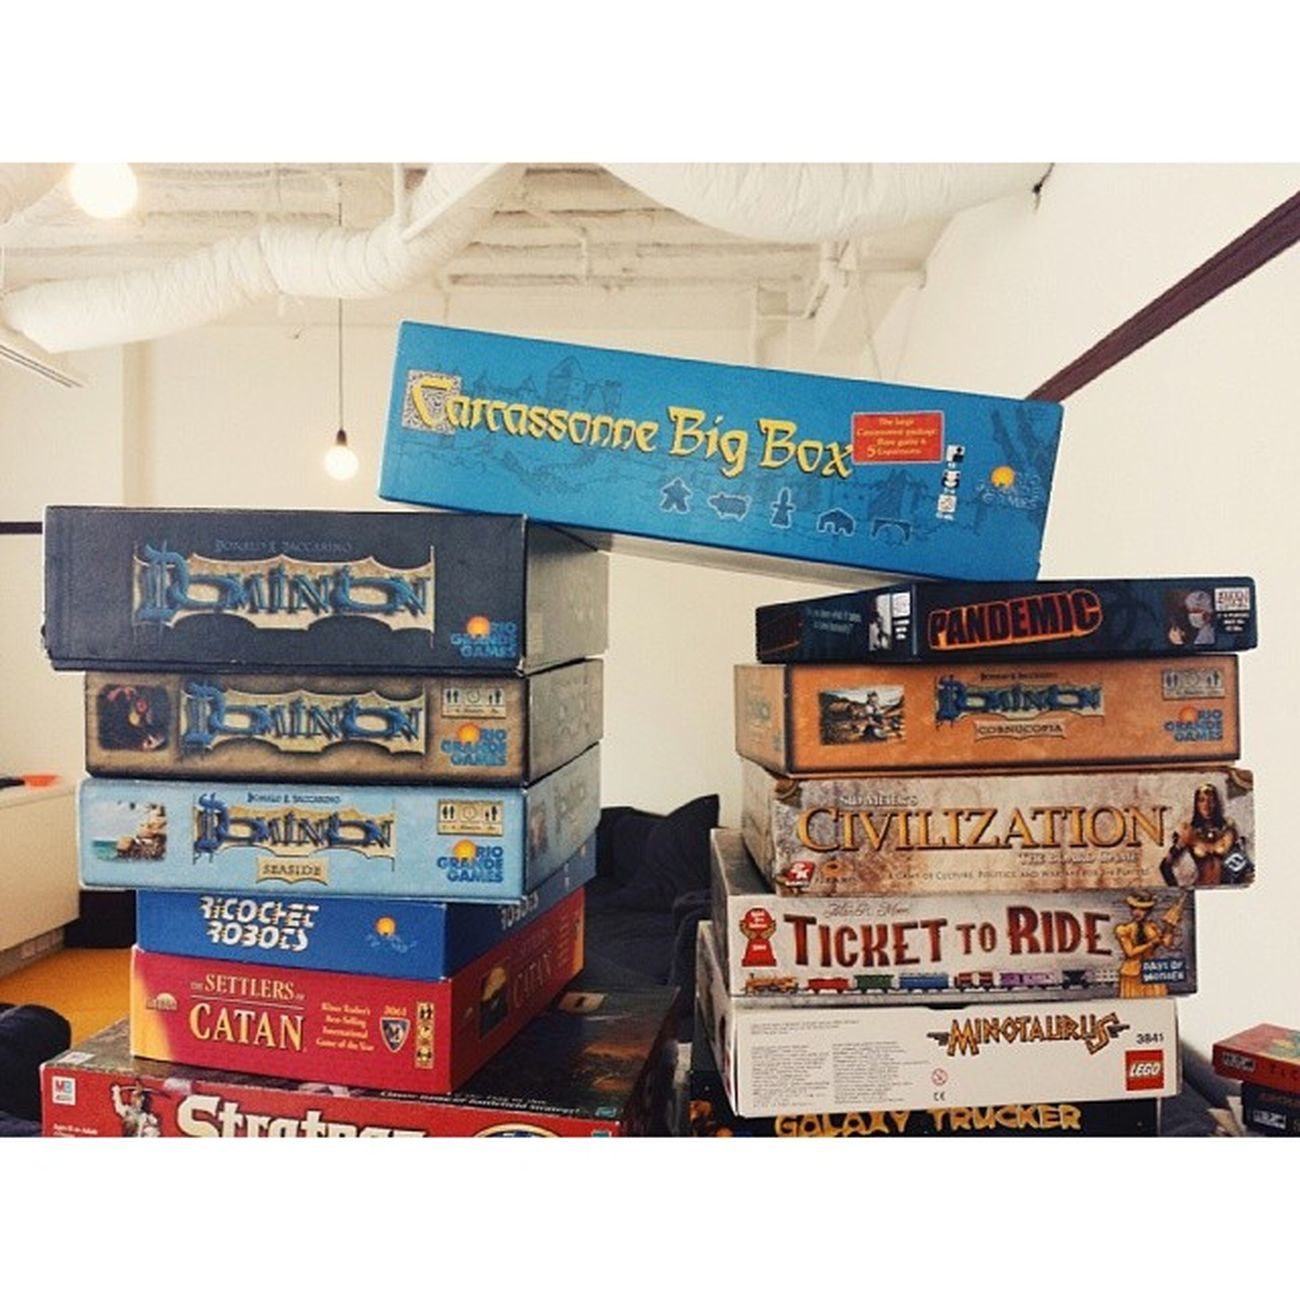 Precarious board game stacking. Atlassian Boardgamegeek Vscocam Sydney galaxys4